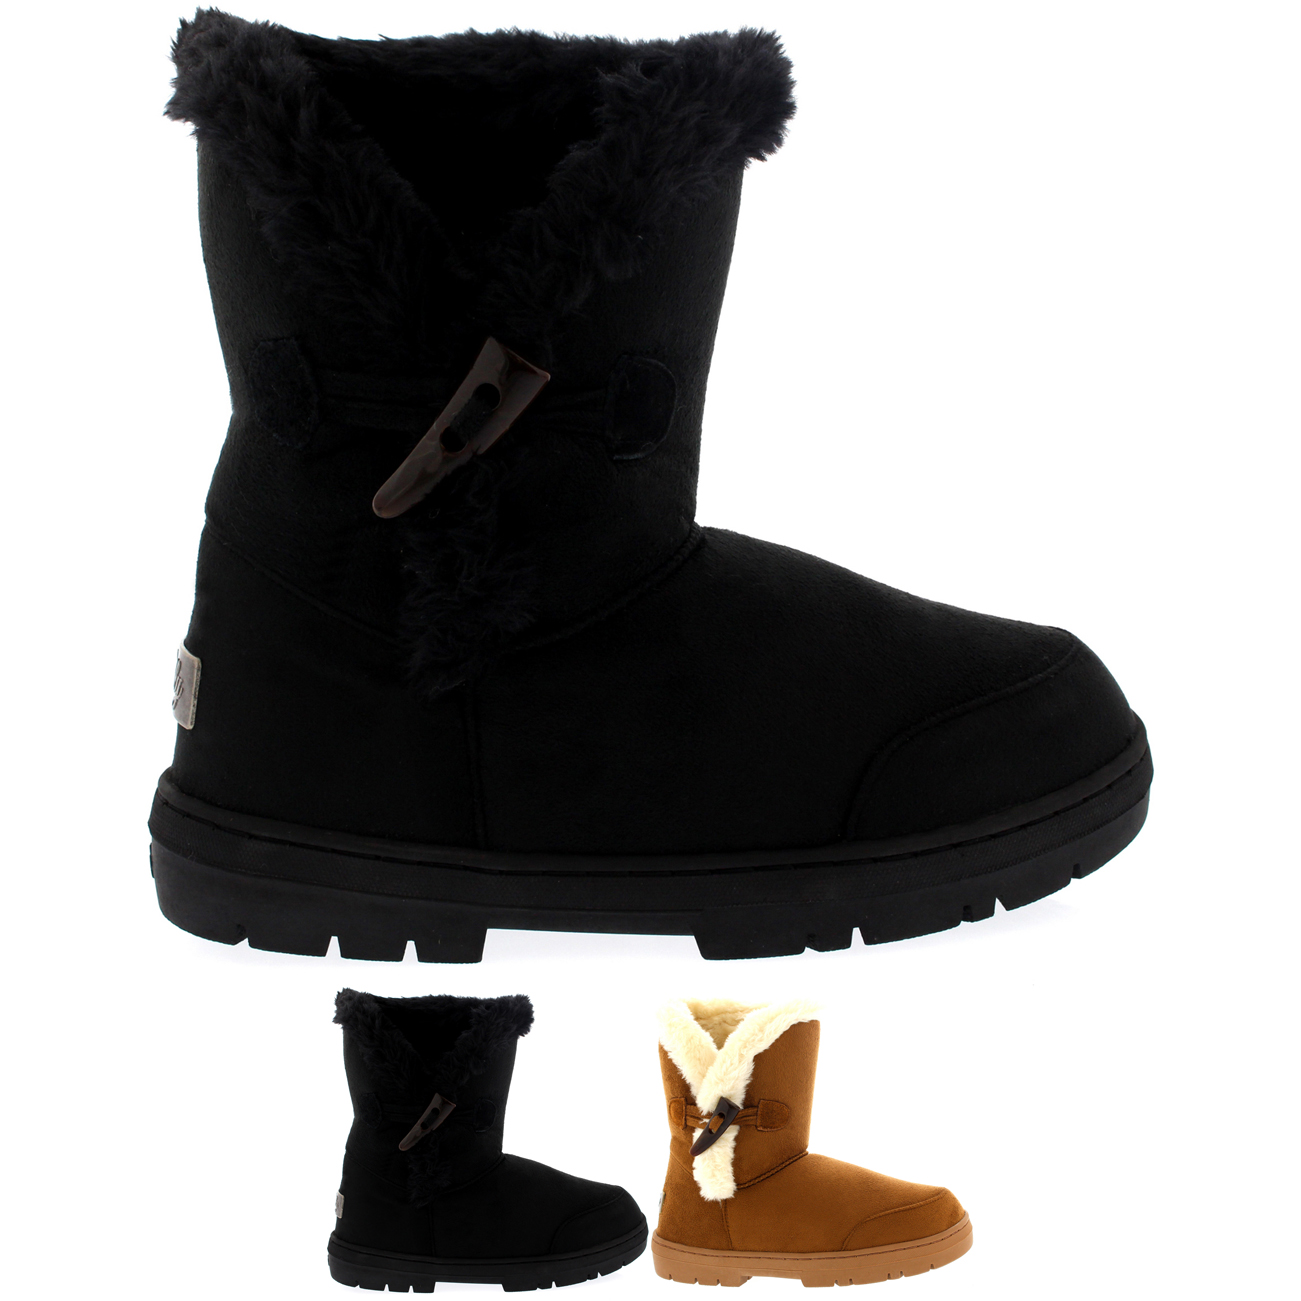 One Toggle Rope Thick Fur Boots